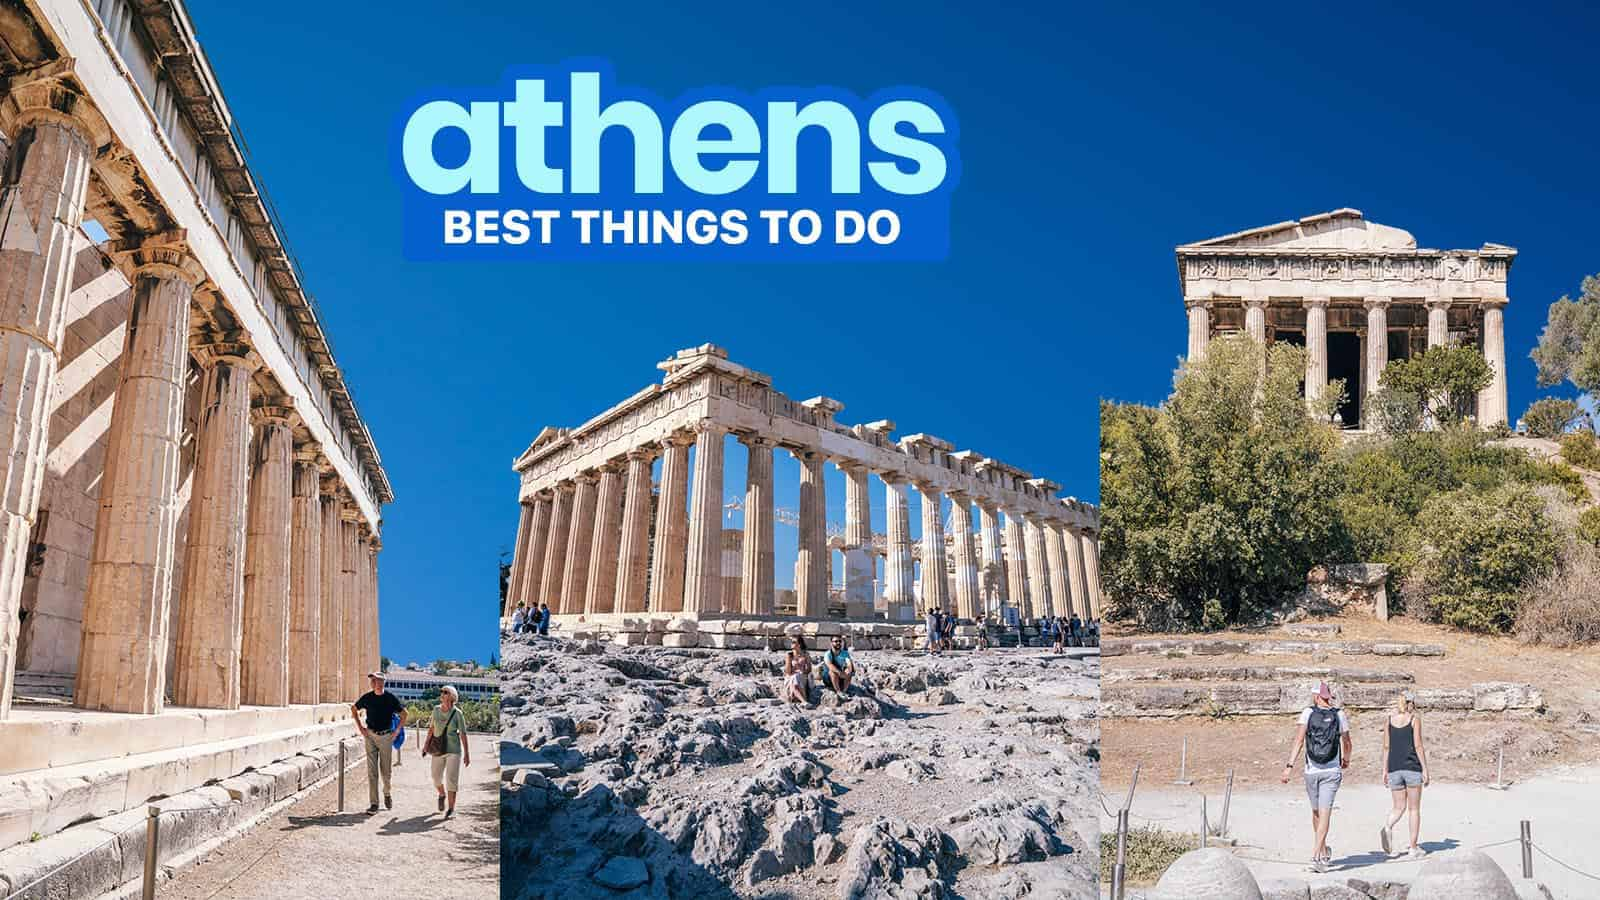 15 BEST THINGS TO DO IN ATHENS